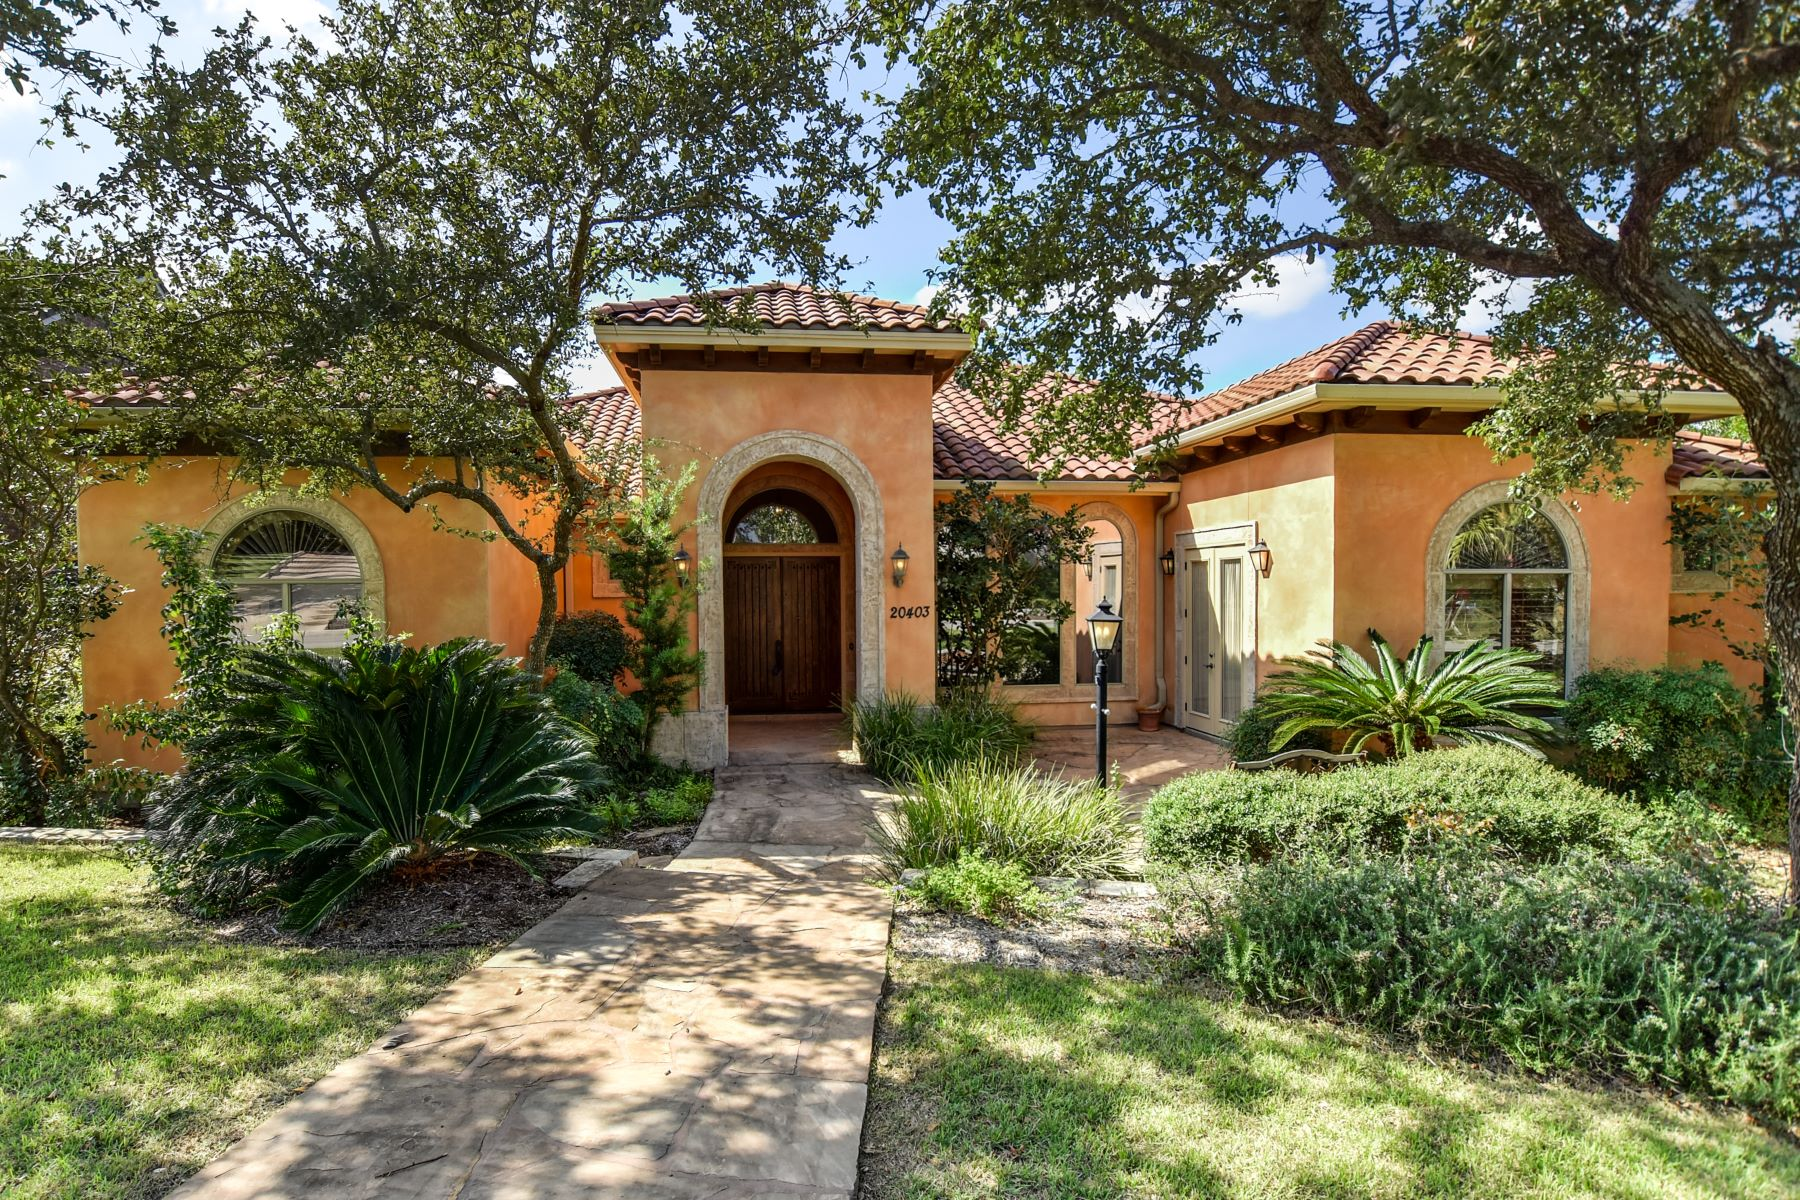 Single Family Home for Sale at Private Estate in The Pinnacle 20403 Terrabianca San Antonio, Texas 78258 United States